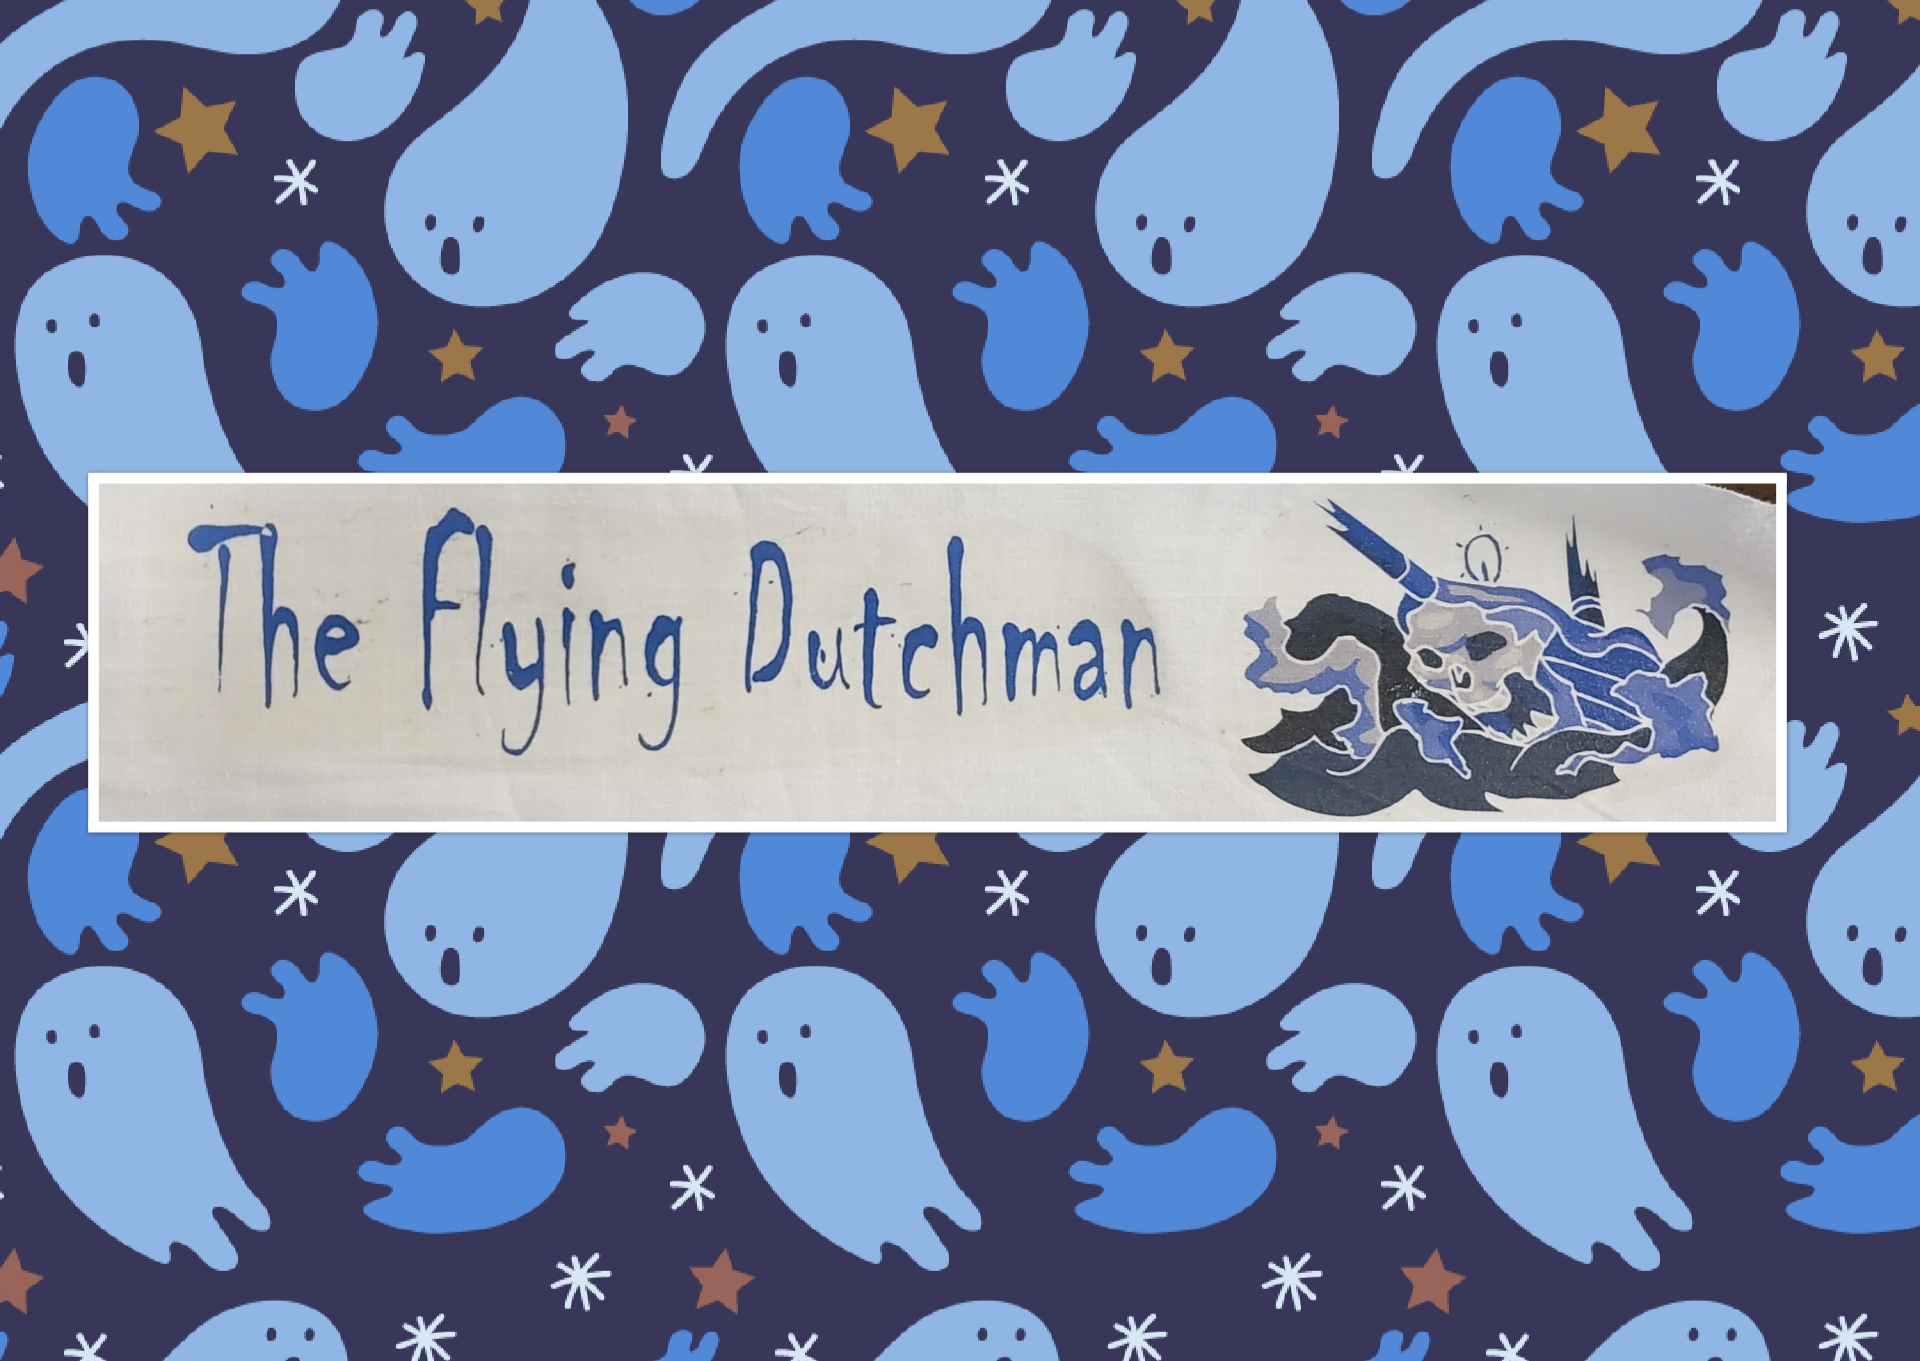 The Flying Dutchman photo